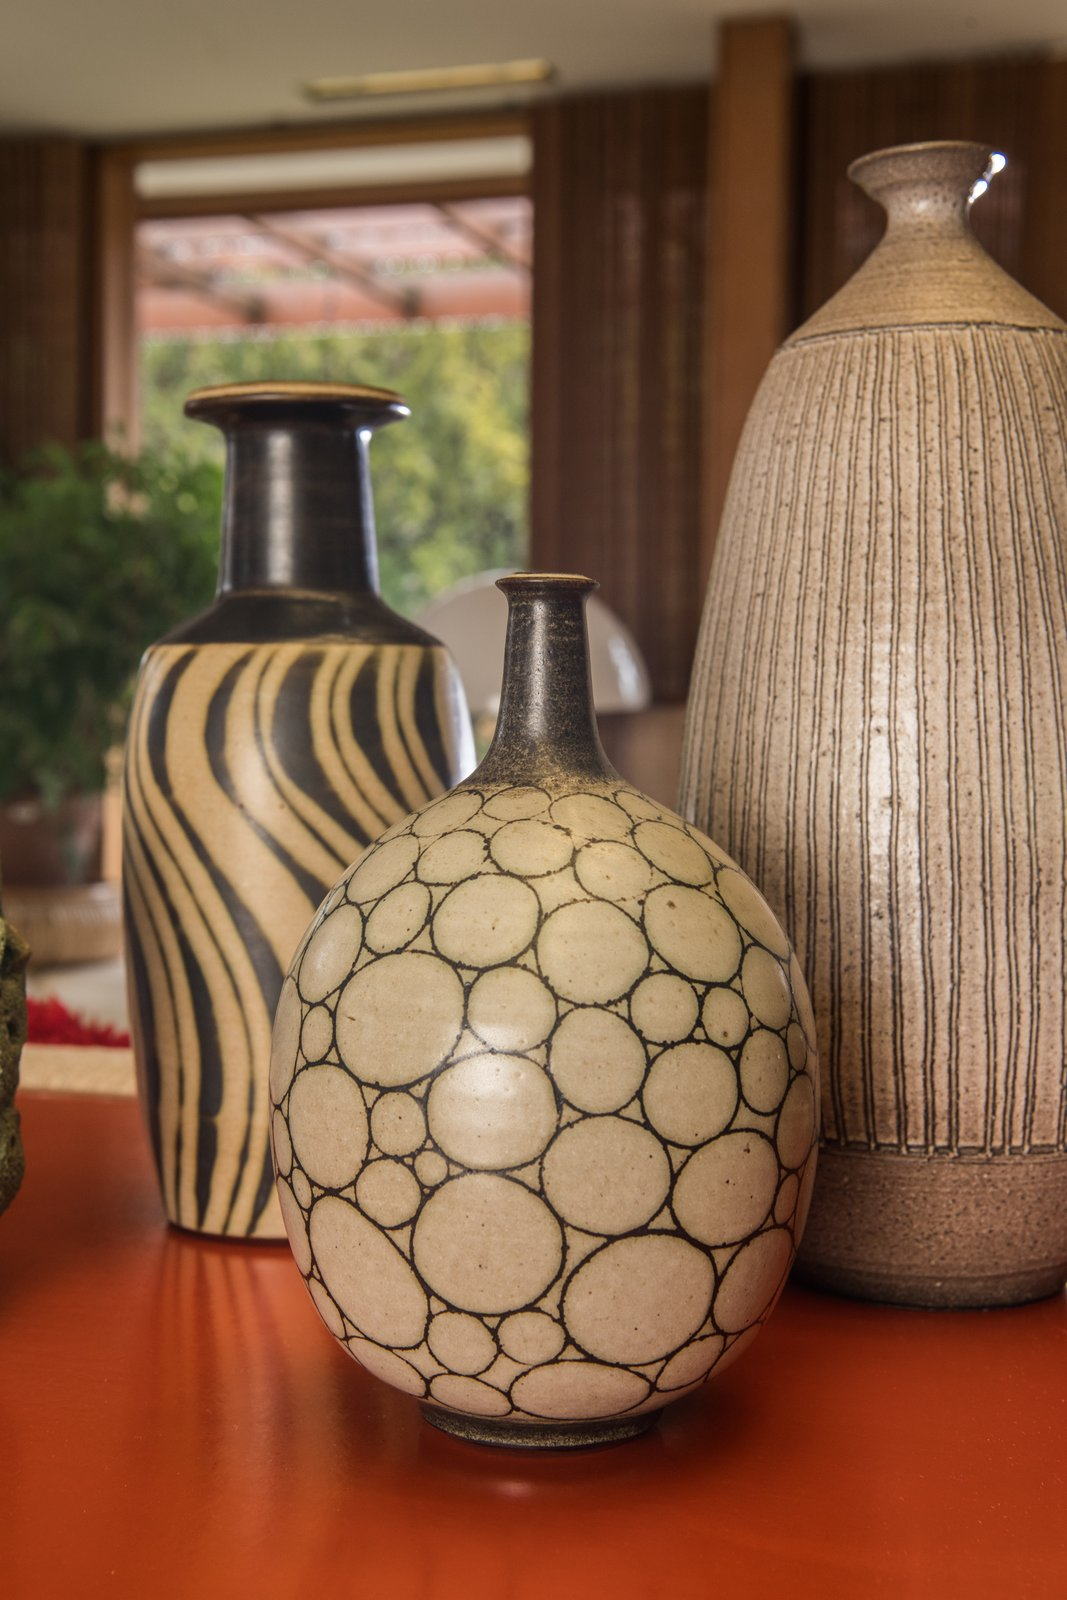 Living Room Three vases by Harrison McIntosh are displayed in the living room.  Photo 13 of 15 in A Midcentury Time Capsule Captures an Architect's Love For Iconic Design